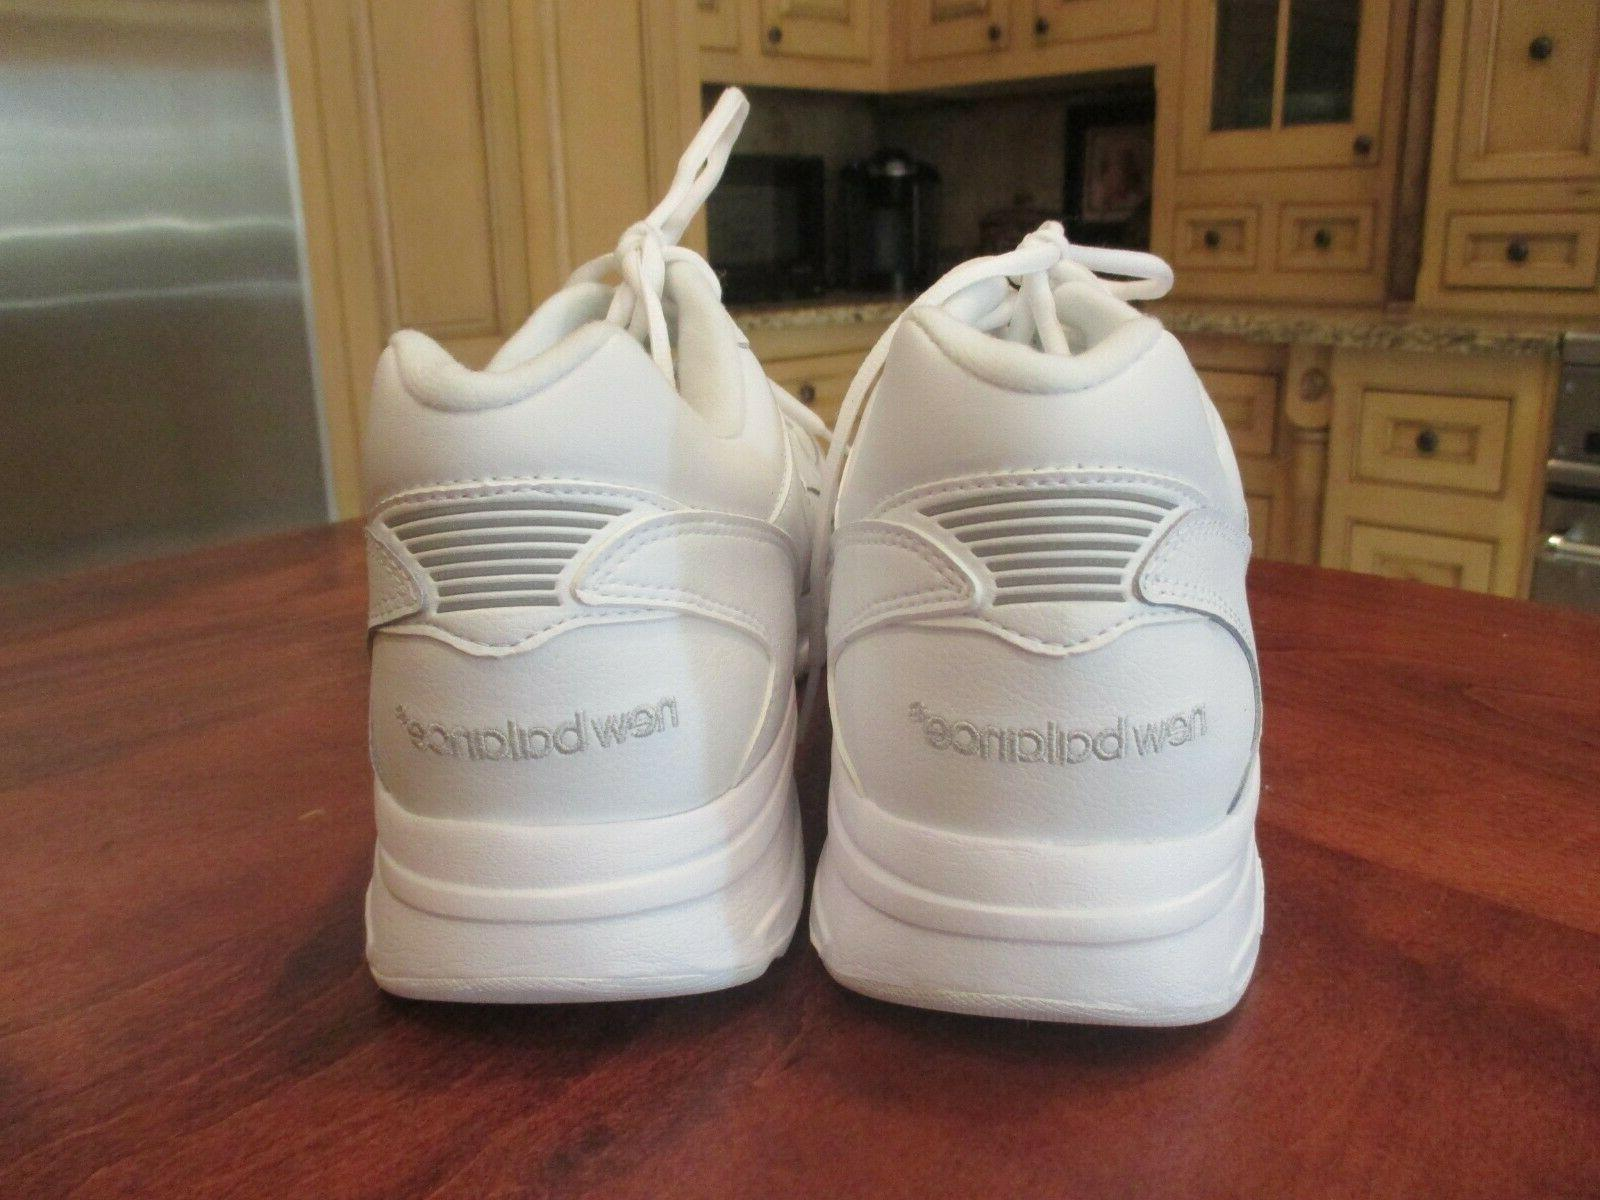 New 575 Tennis Size 14, New